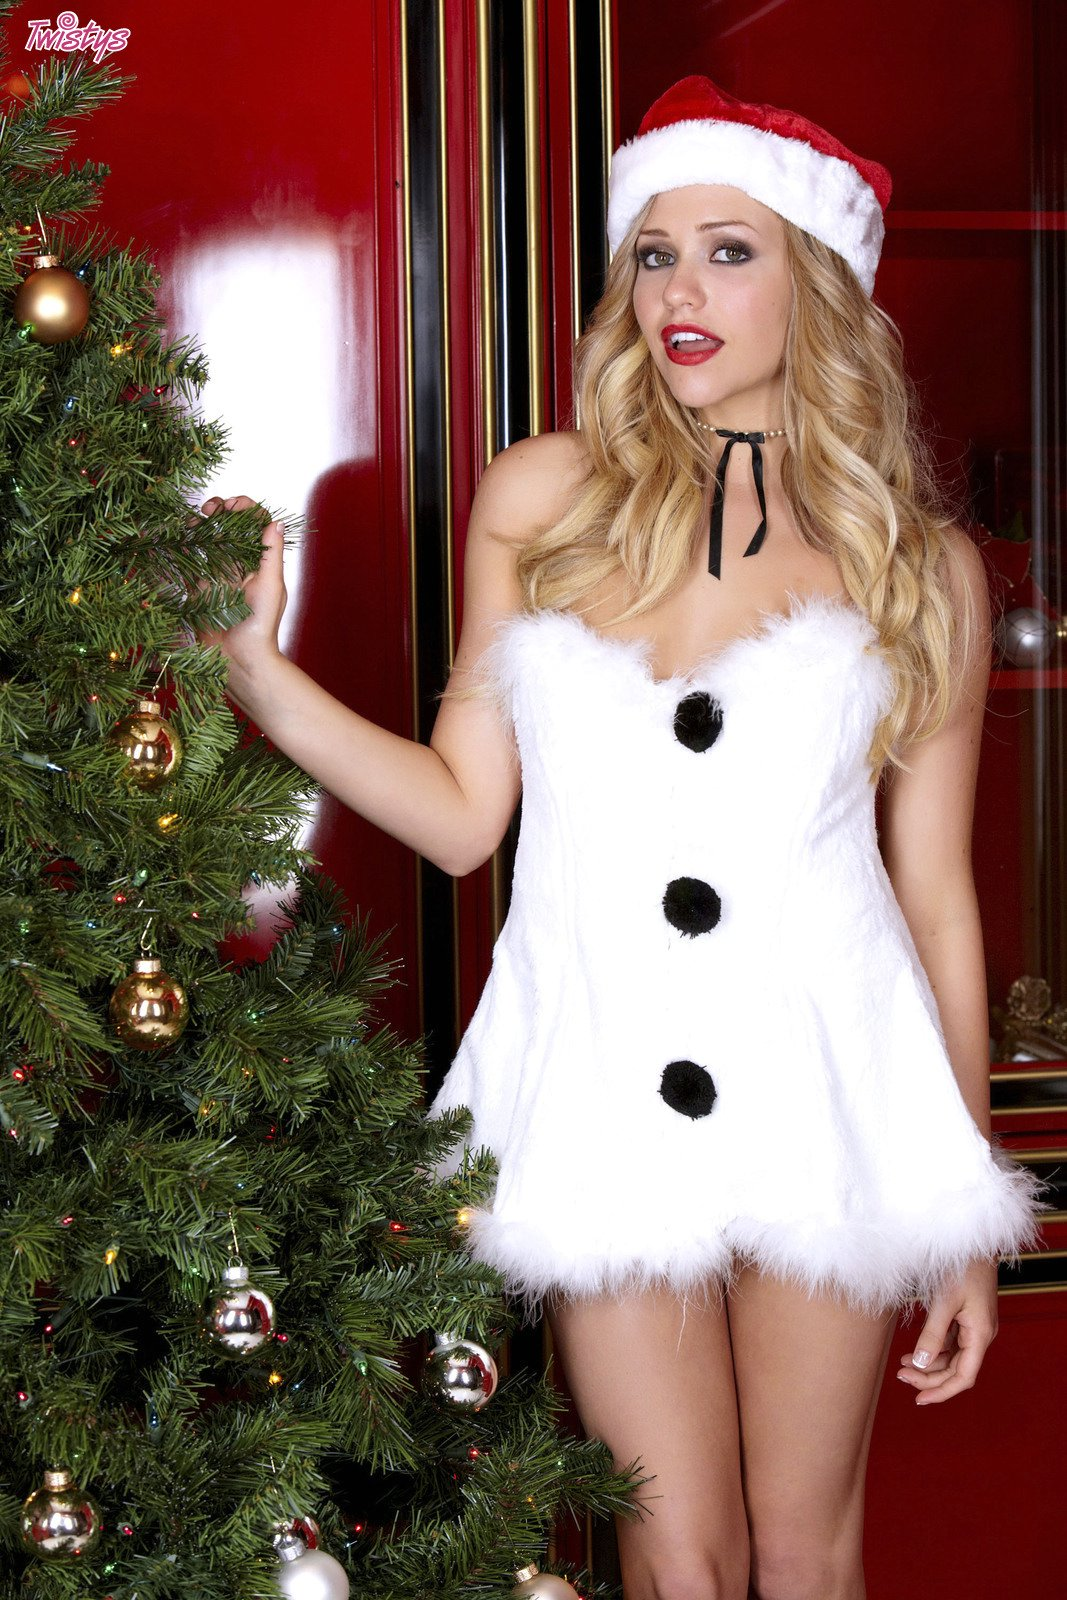 Mia Malkova in christmas outfit posing for your pleasure ...